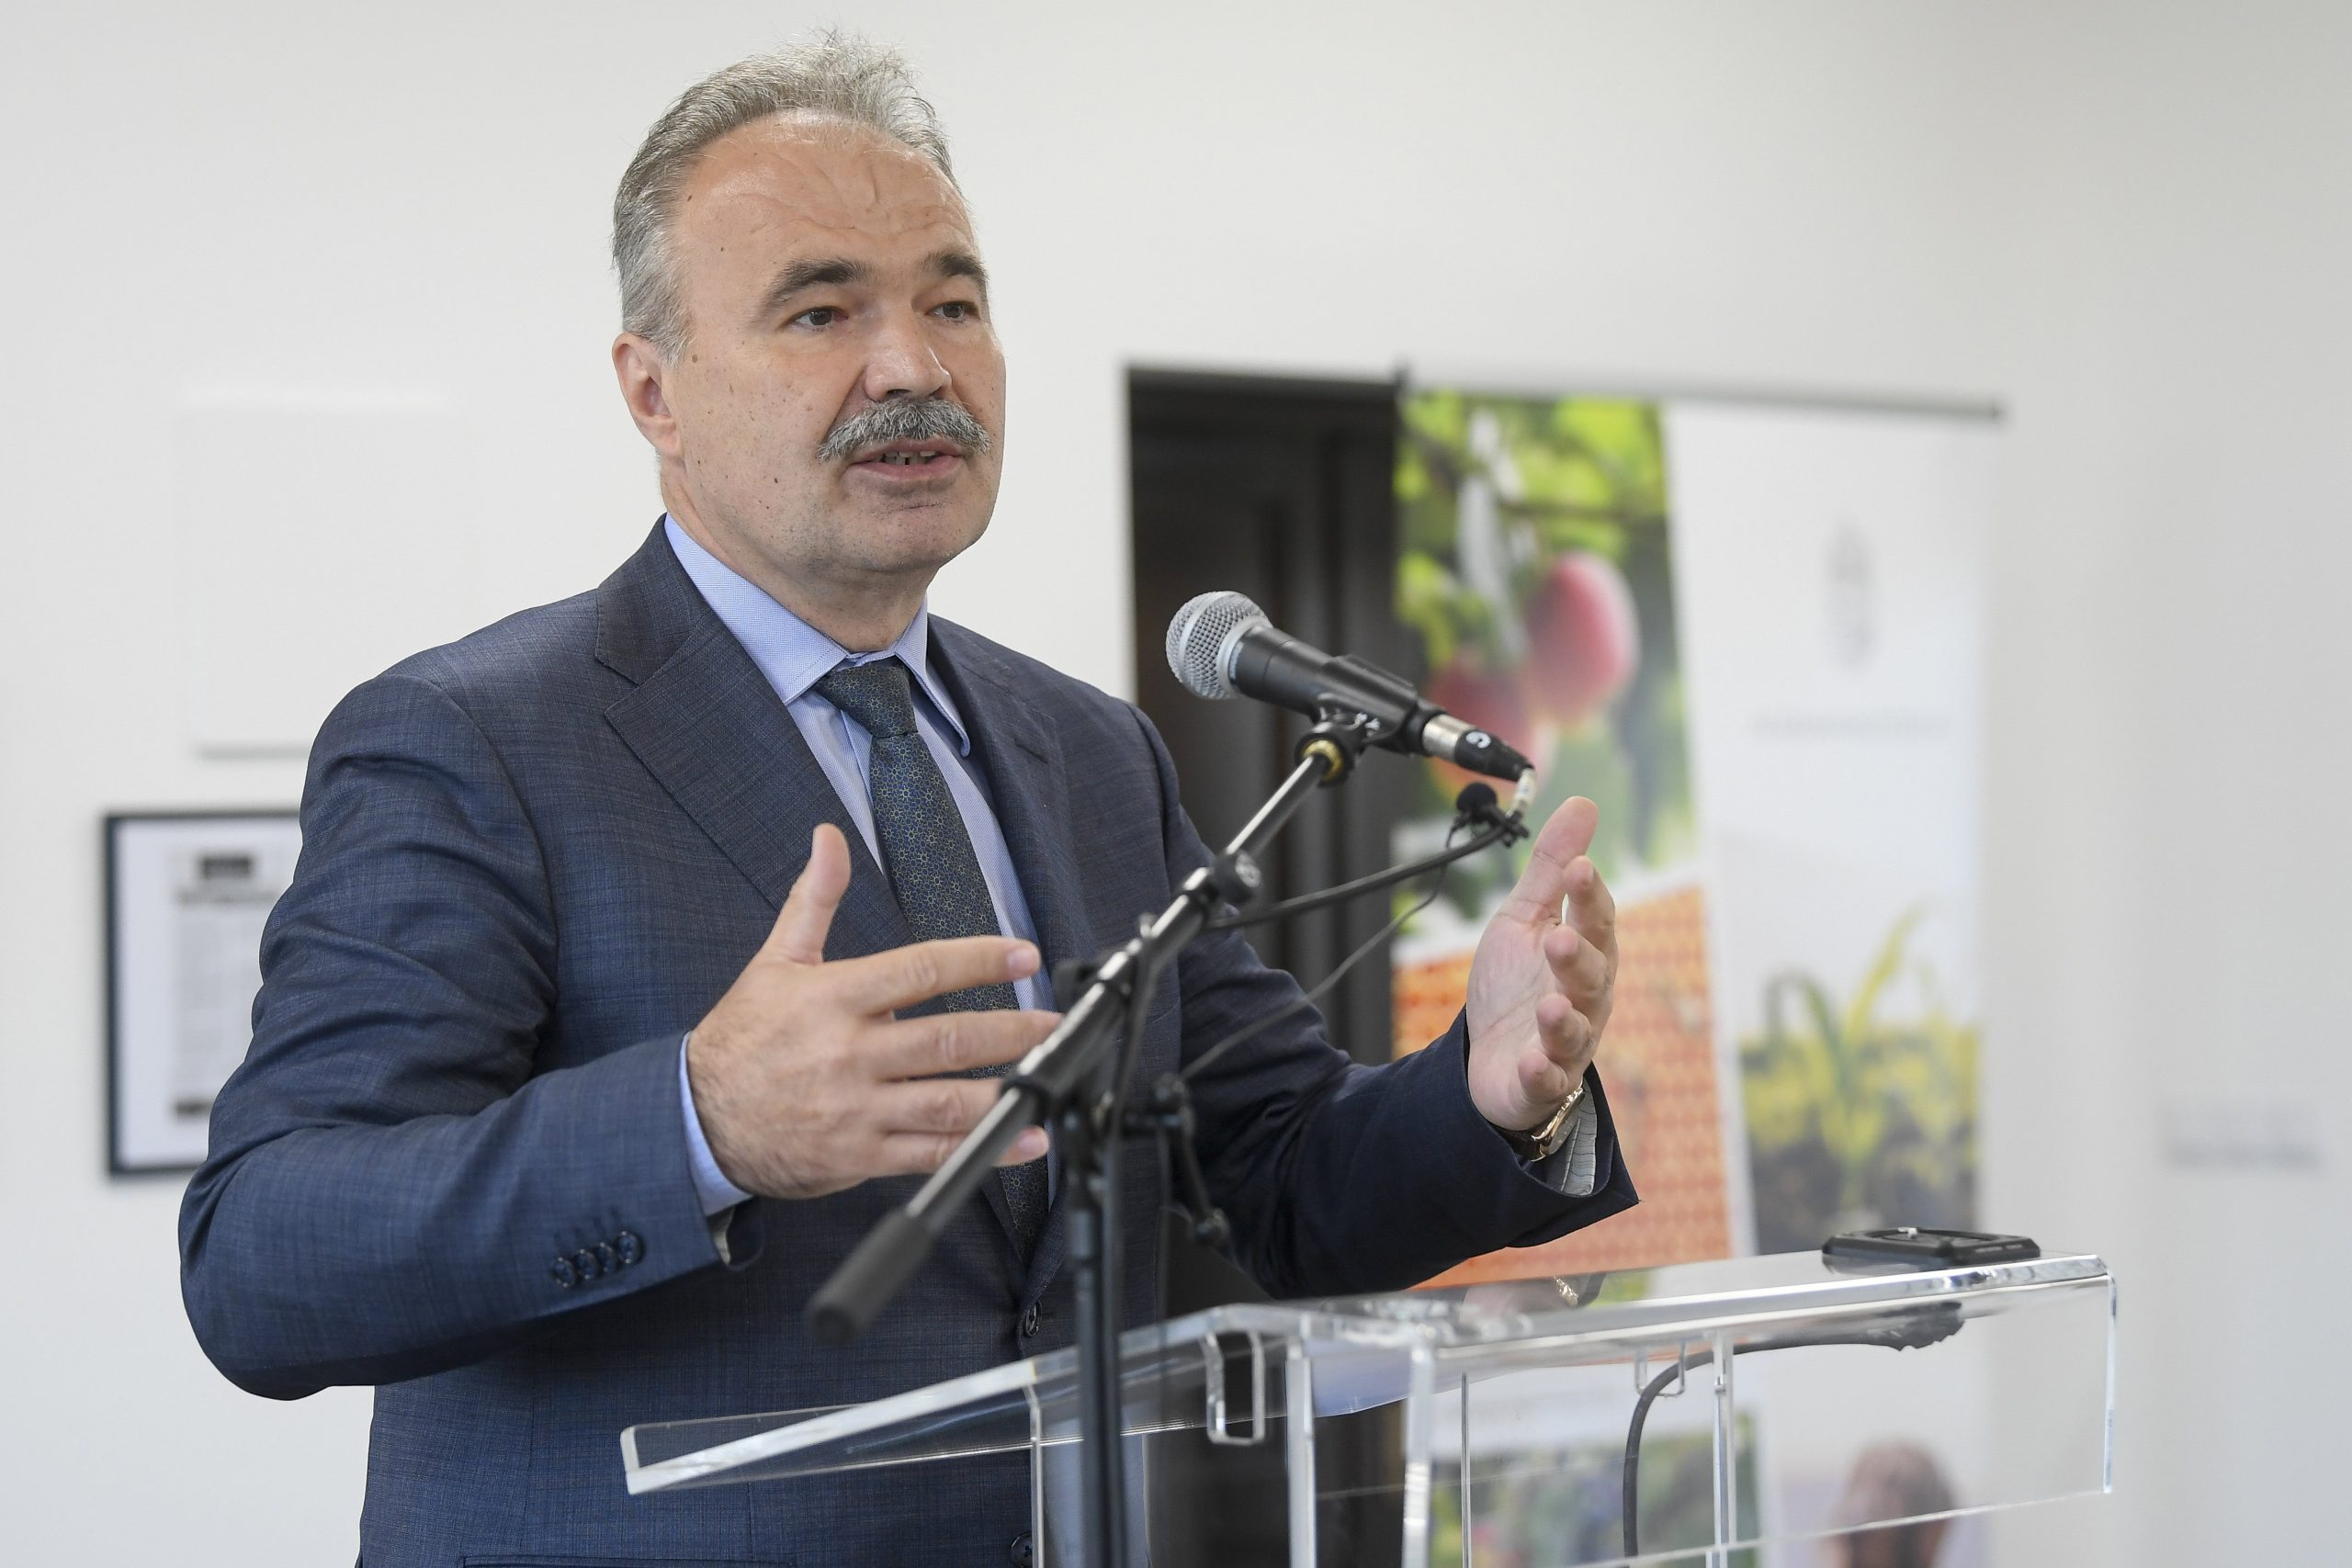 Agriculture Minister: Hungary Won't Accept CAP Deal That Hurts Farmers